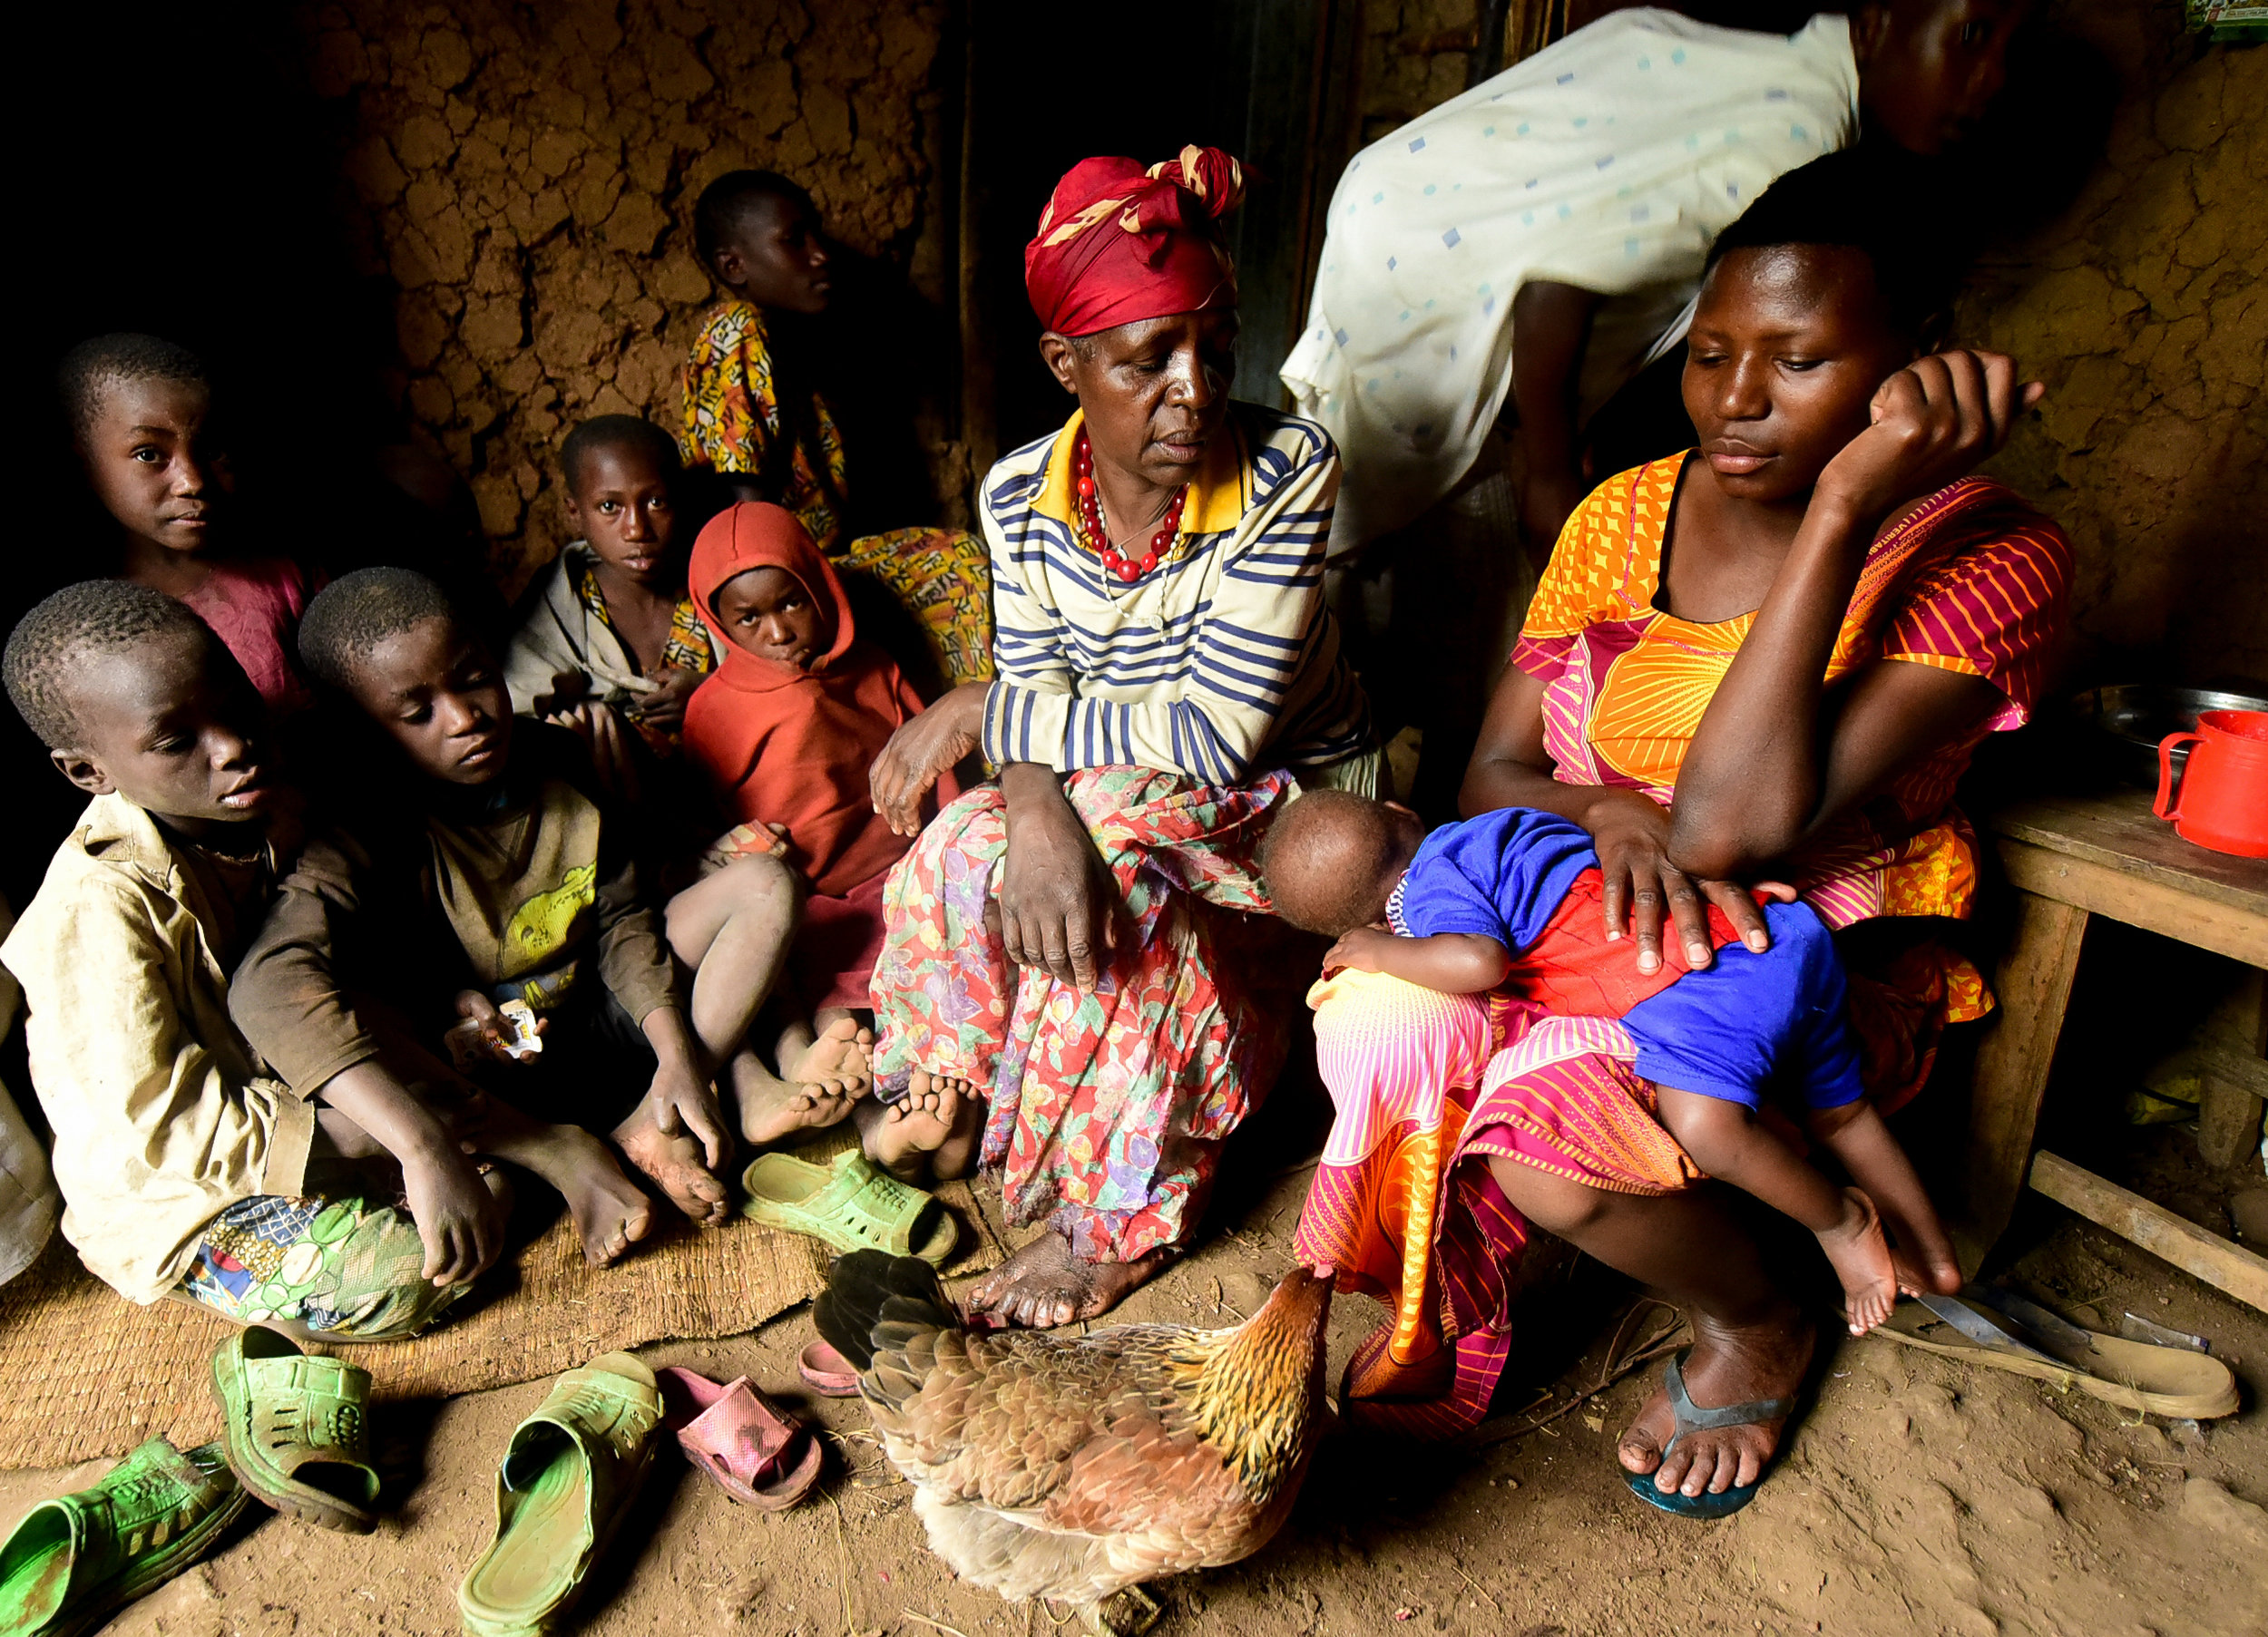 Nyirantugane Claudine sits with her mother-in-law, Mugurwinka Felronie, and several family members during a rainstorm in the house of her in-laws. Claudine and her husband live in a shack on the property of Felronie and her husband.